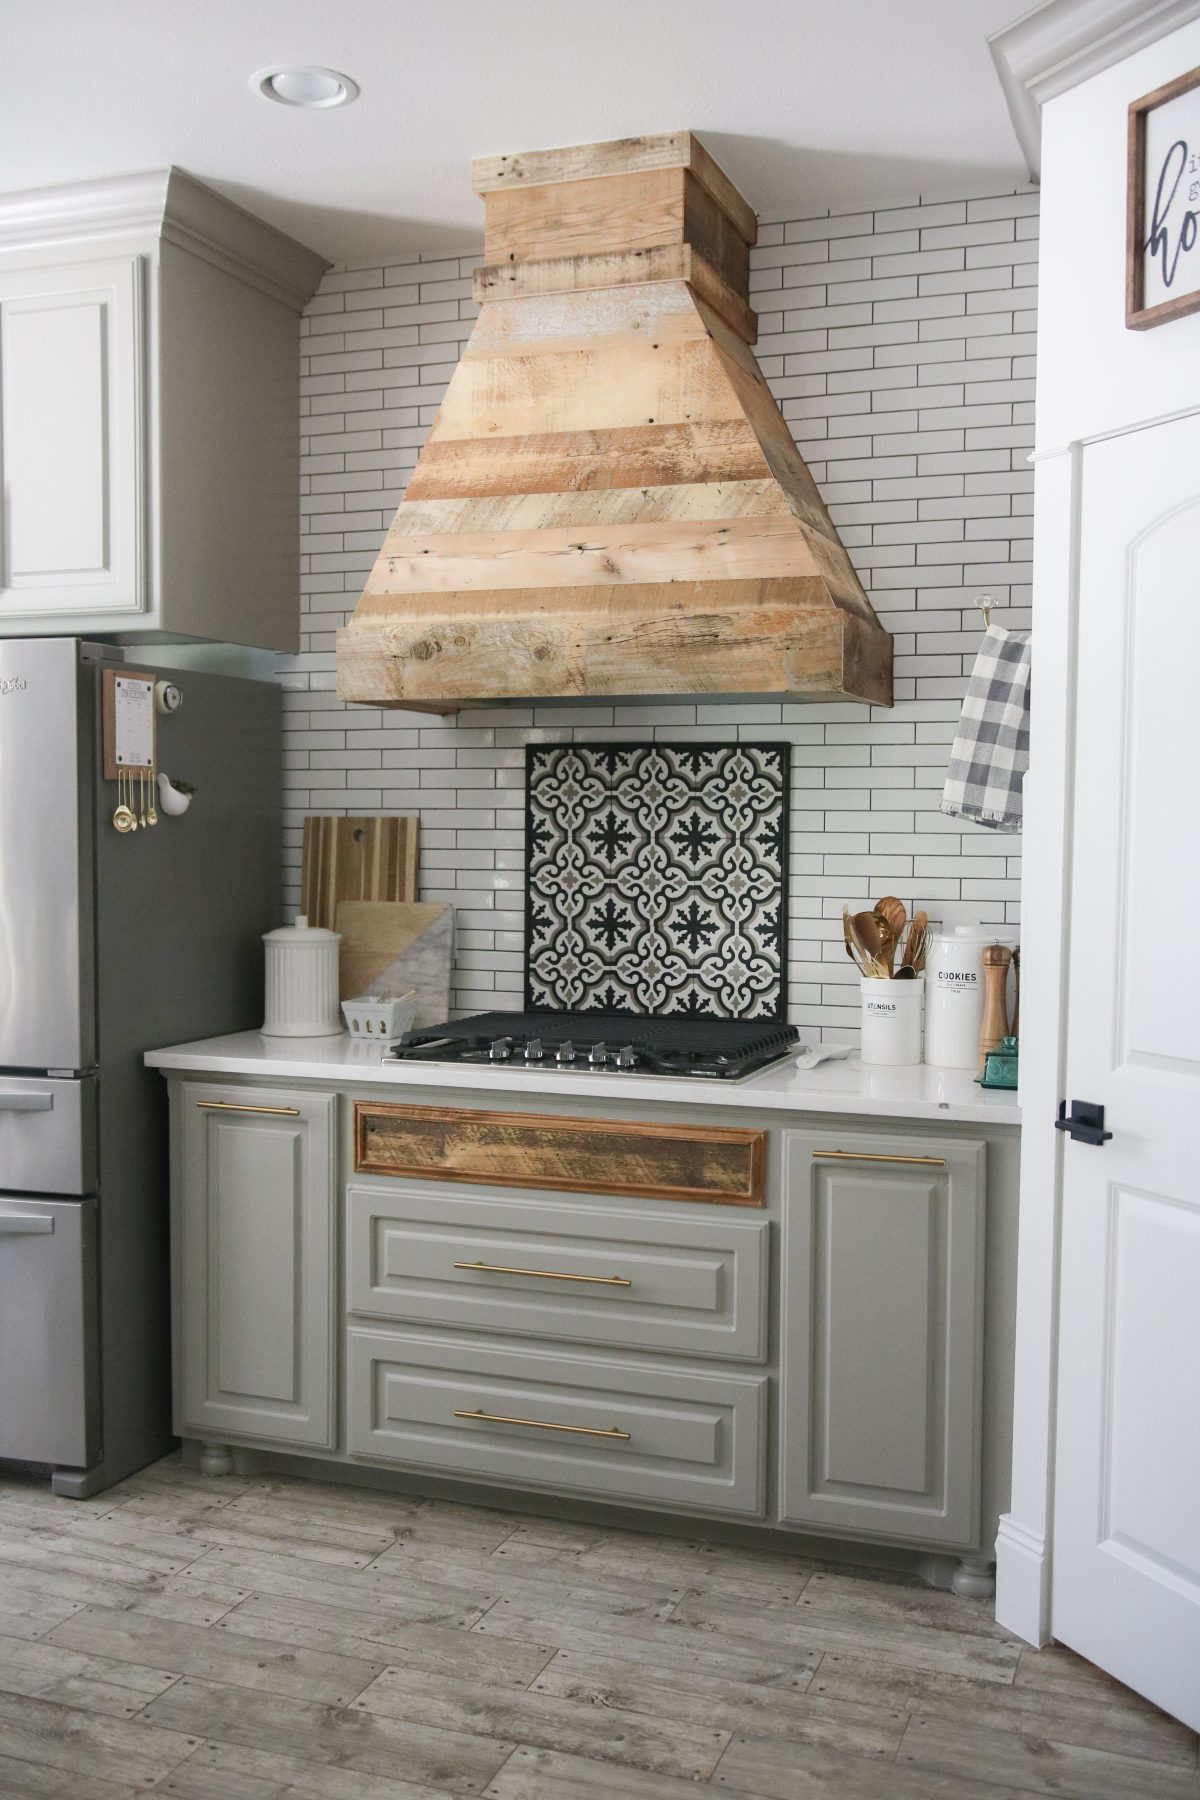 DIY Modern Farmhouse Vent Hood and Tool Giveaway!